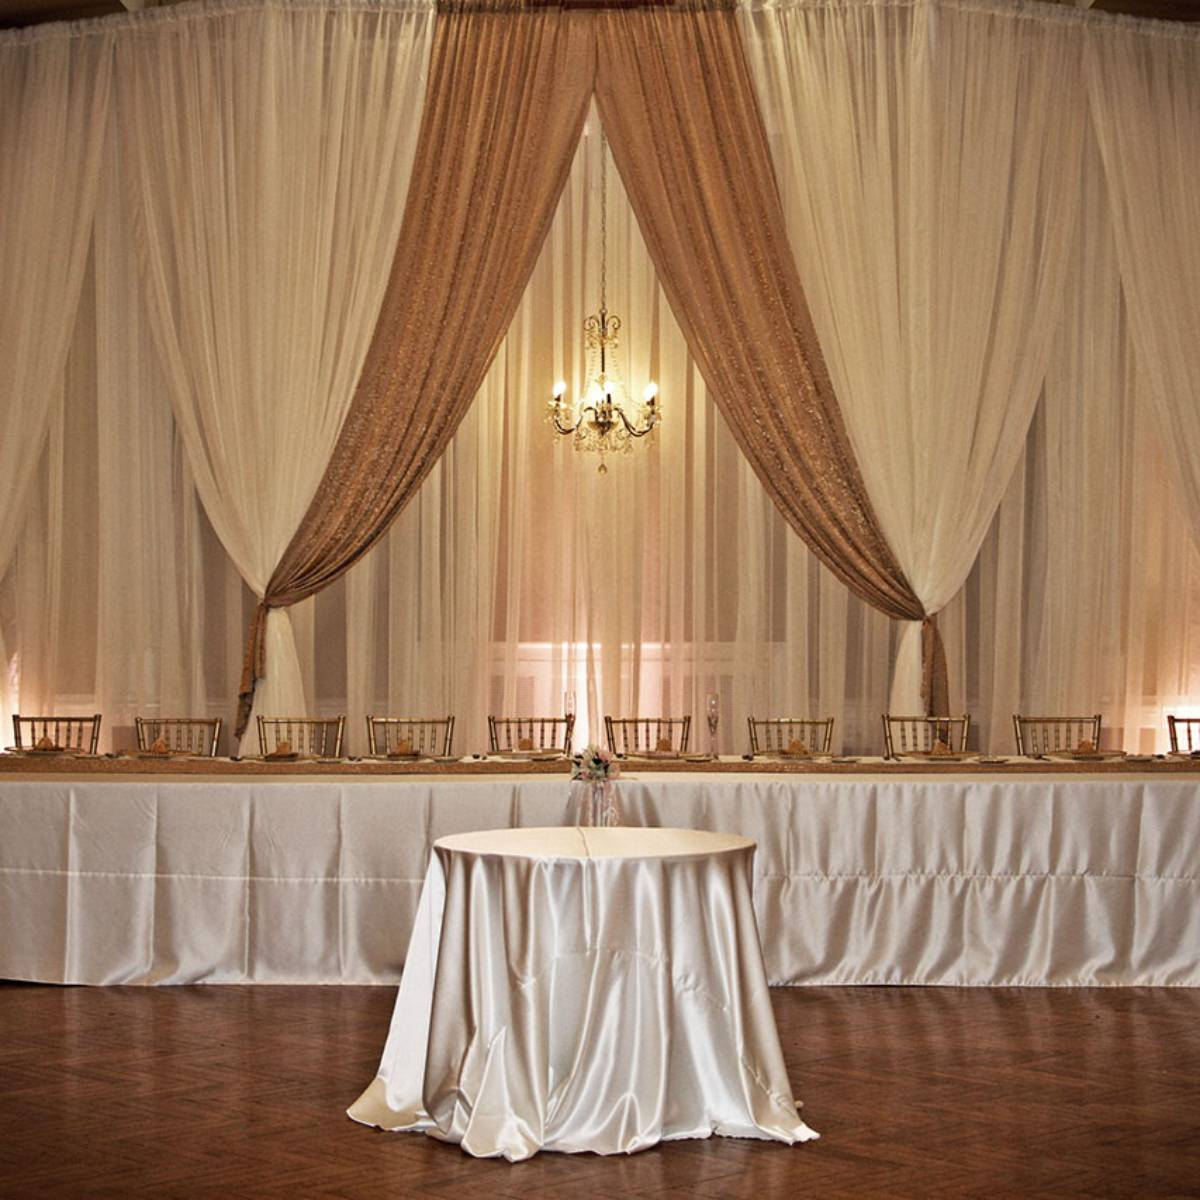 Custom Backdrop Sheer Ivory With Sheer Ivory And Iridescent Crush Front Layer And Crystal Chandelier